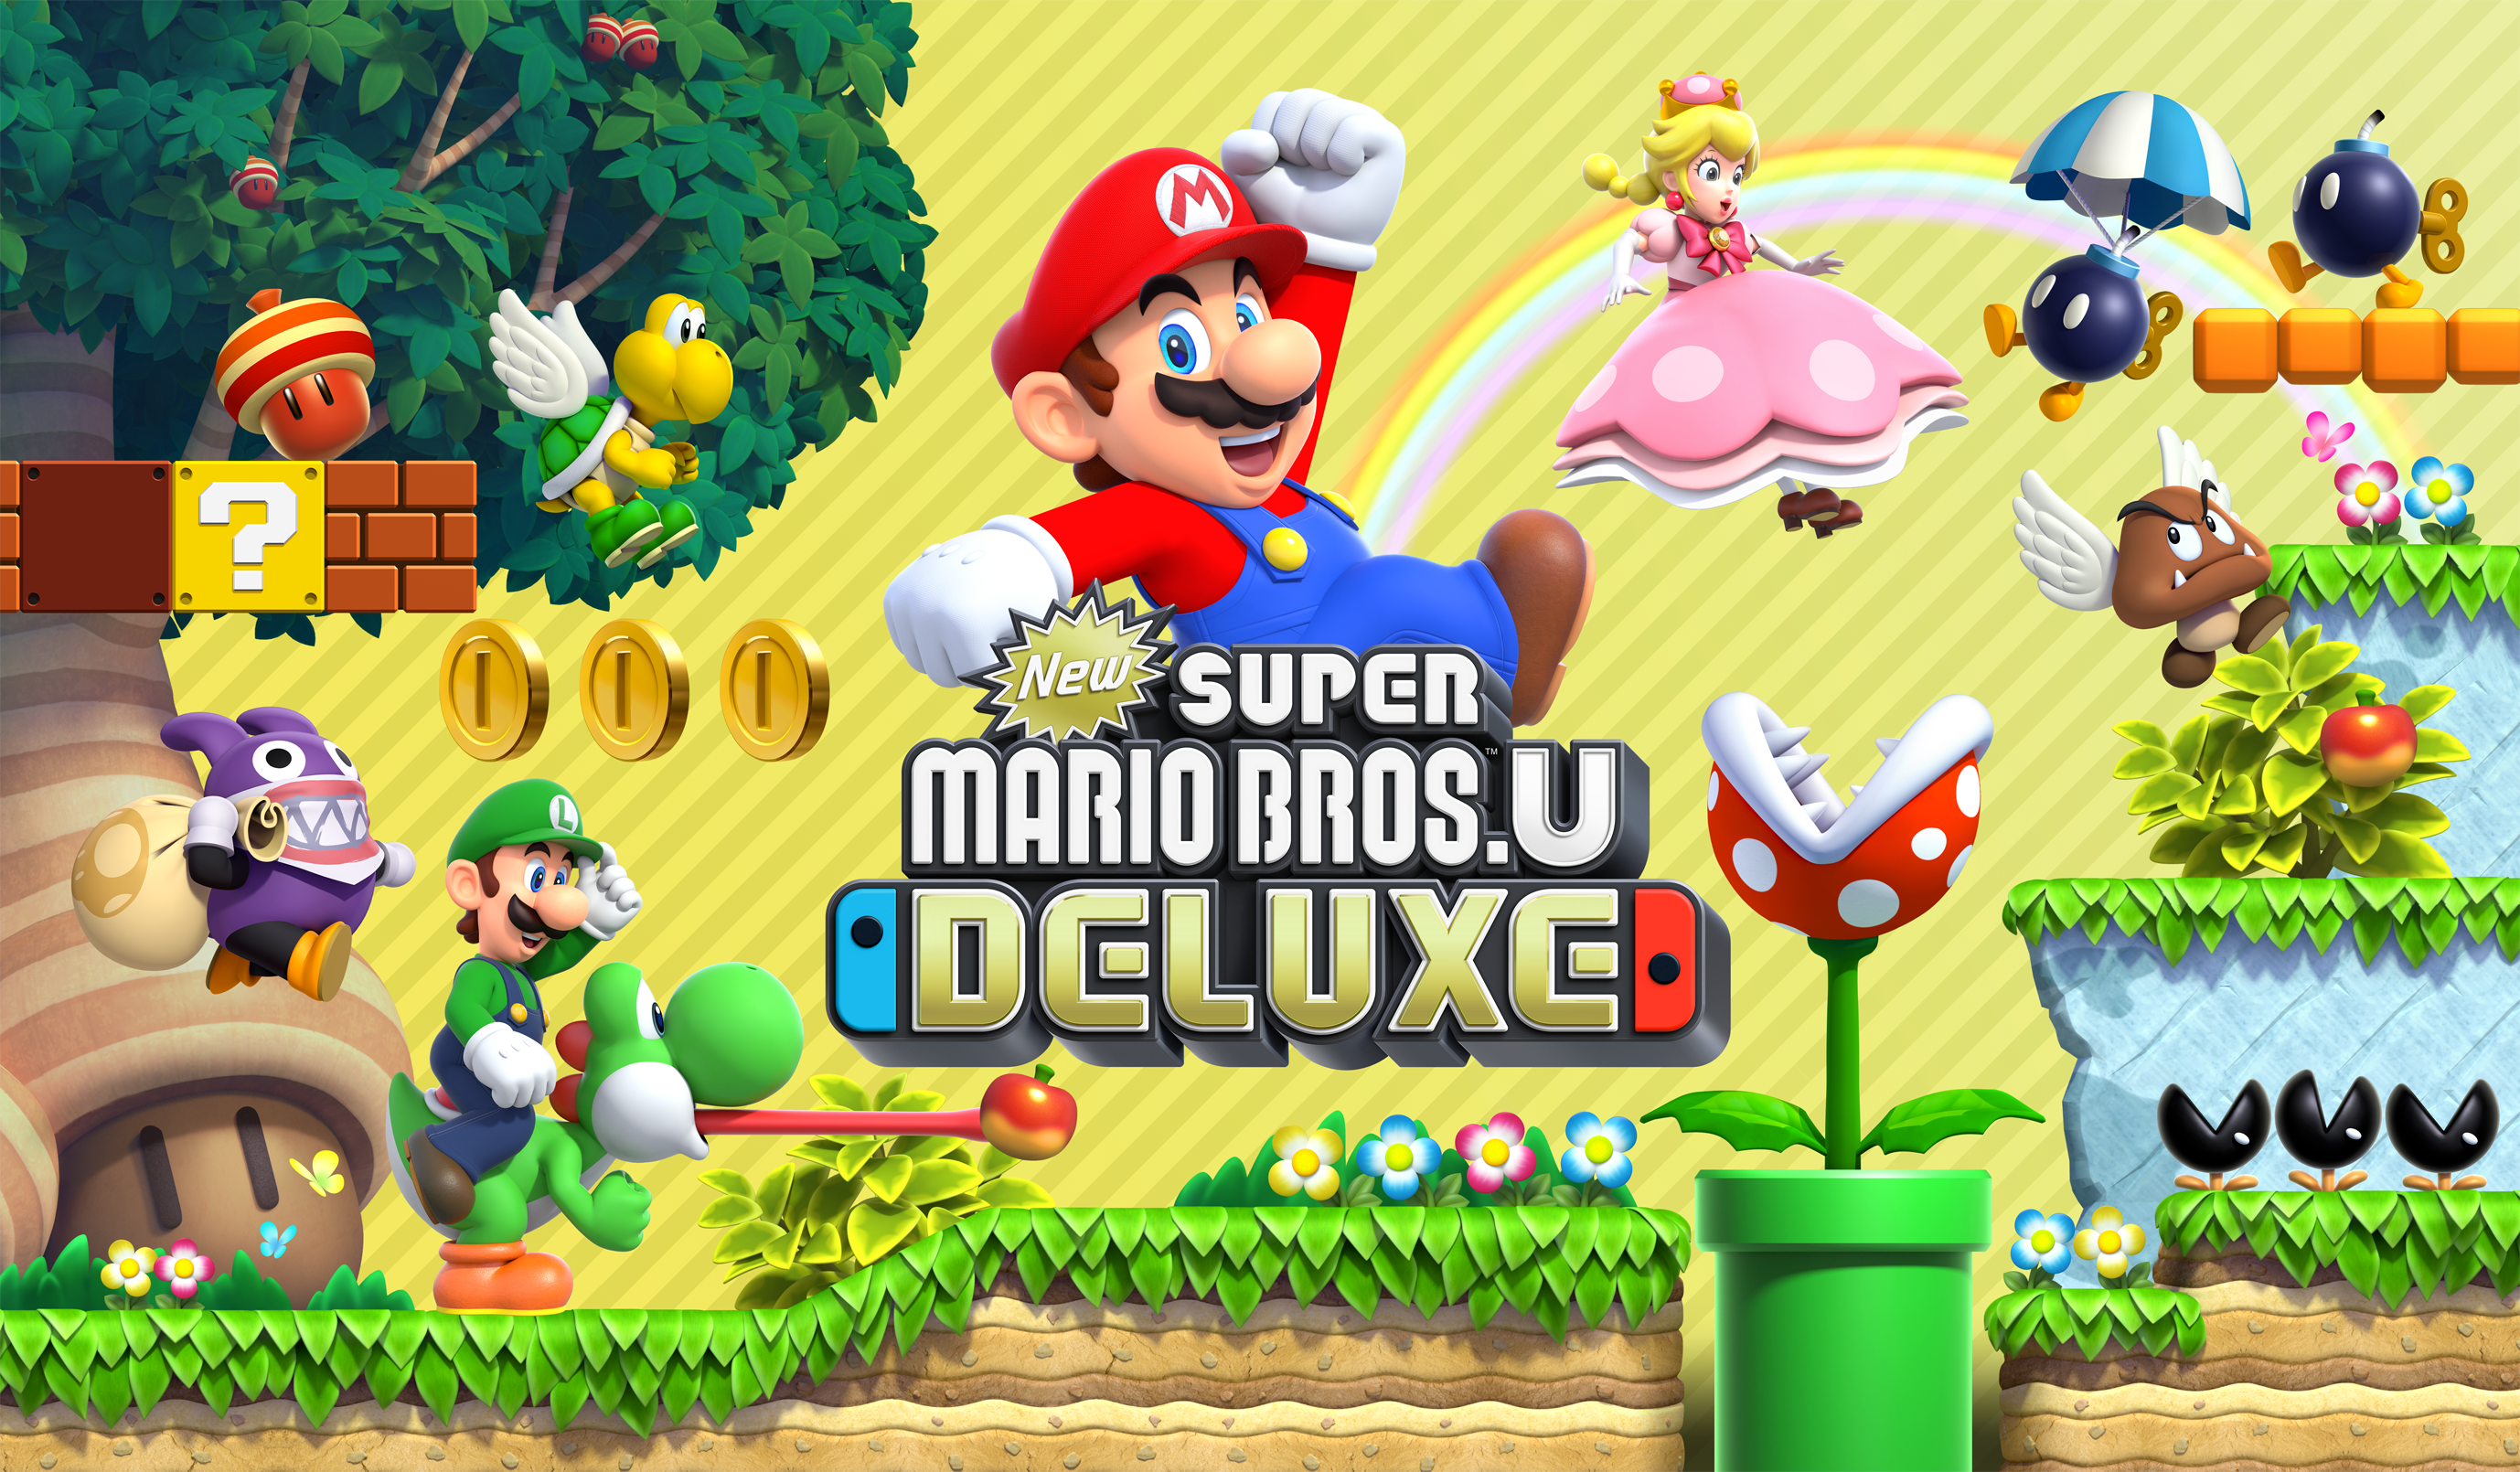 New Super Mario Bros U Deluxe HD Wallpaper Background Image 2756x1610